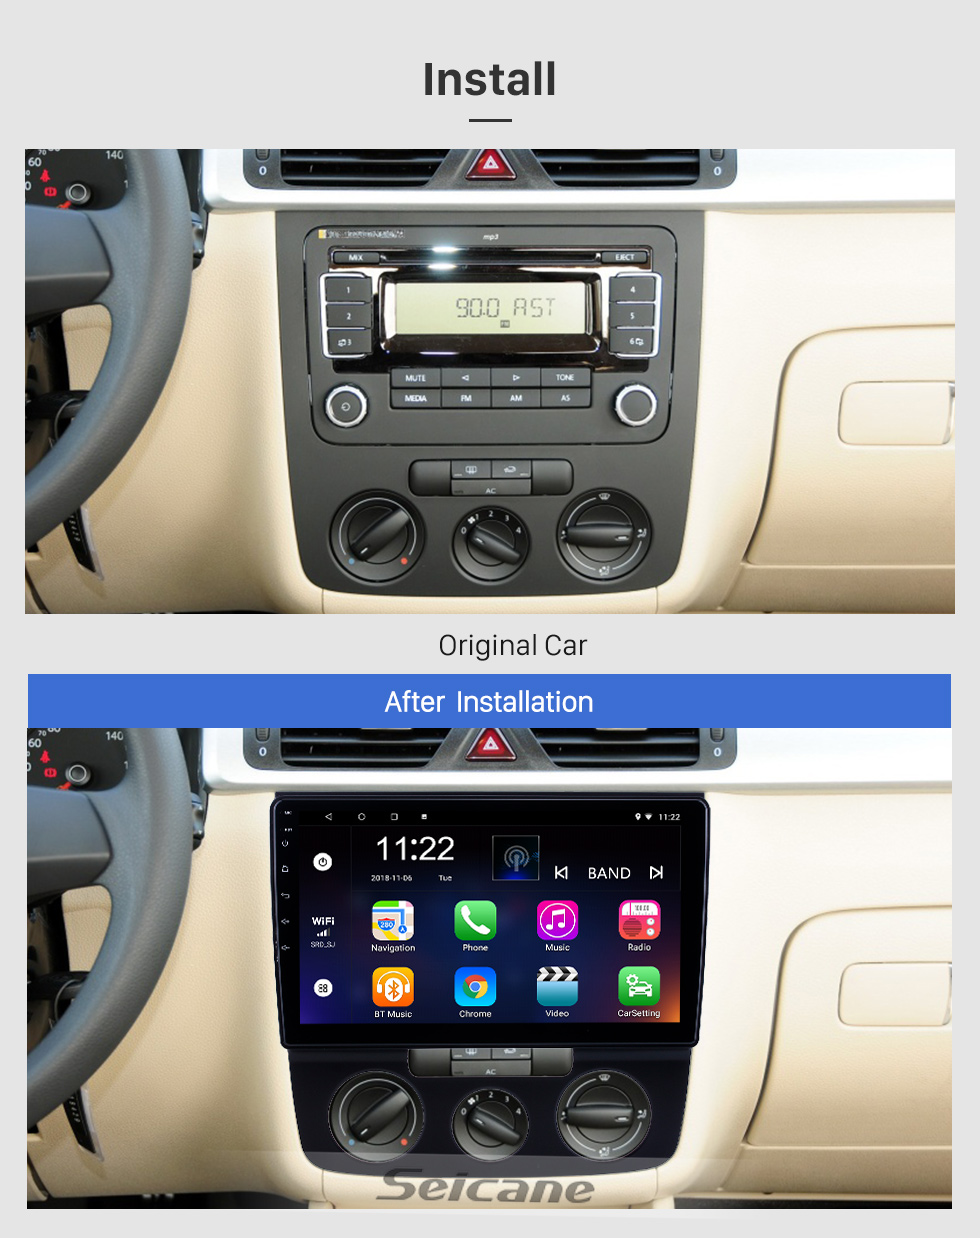 Seicane 10.1 inch Android 8.1 GPS Navigation Radio for 2006-2010 VW Volkswagen Bora Manual A/C With HD Touchscreen Bluetooth support Carplay Rear camera